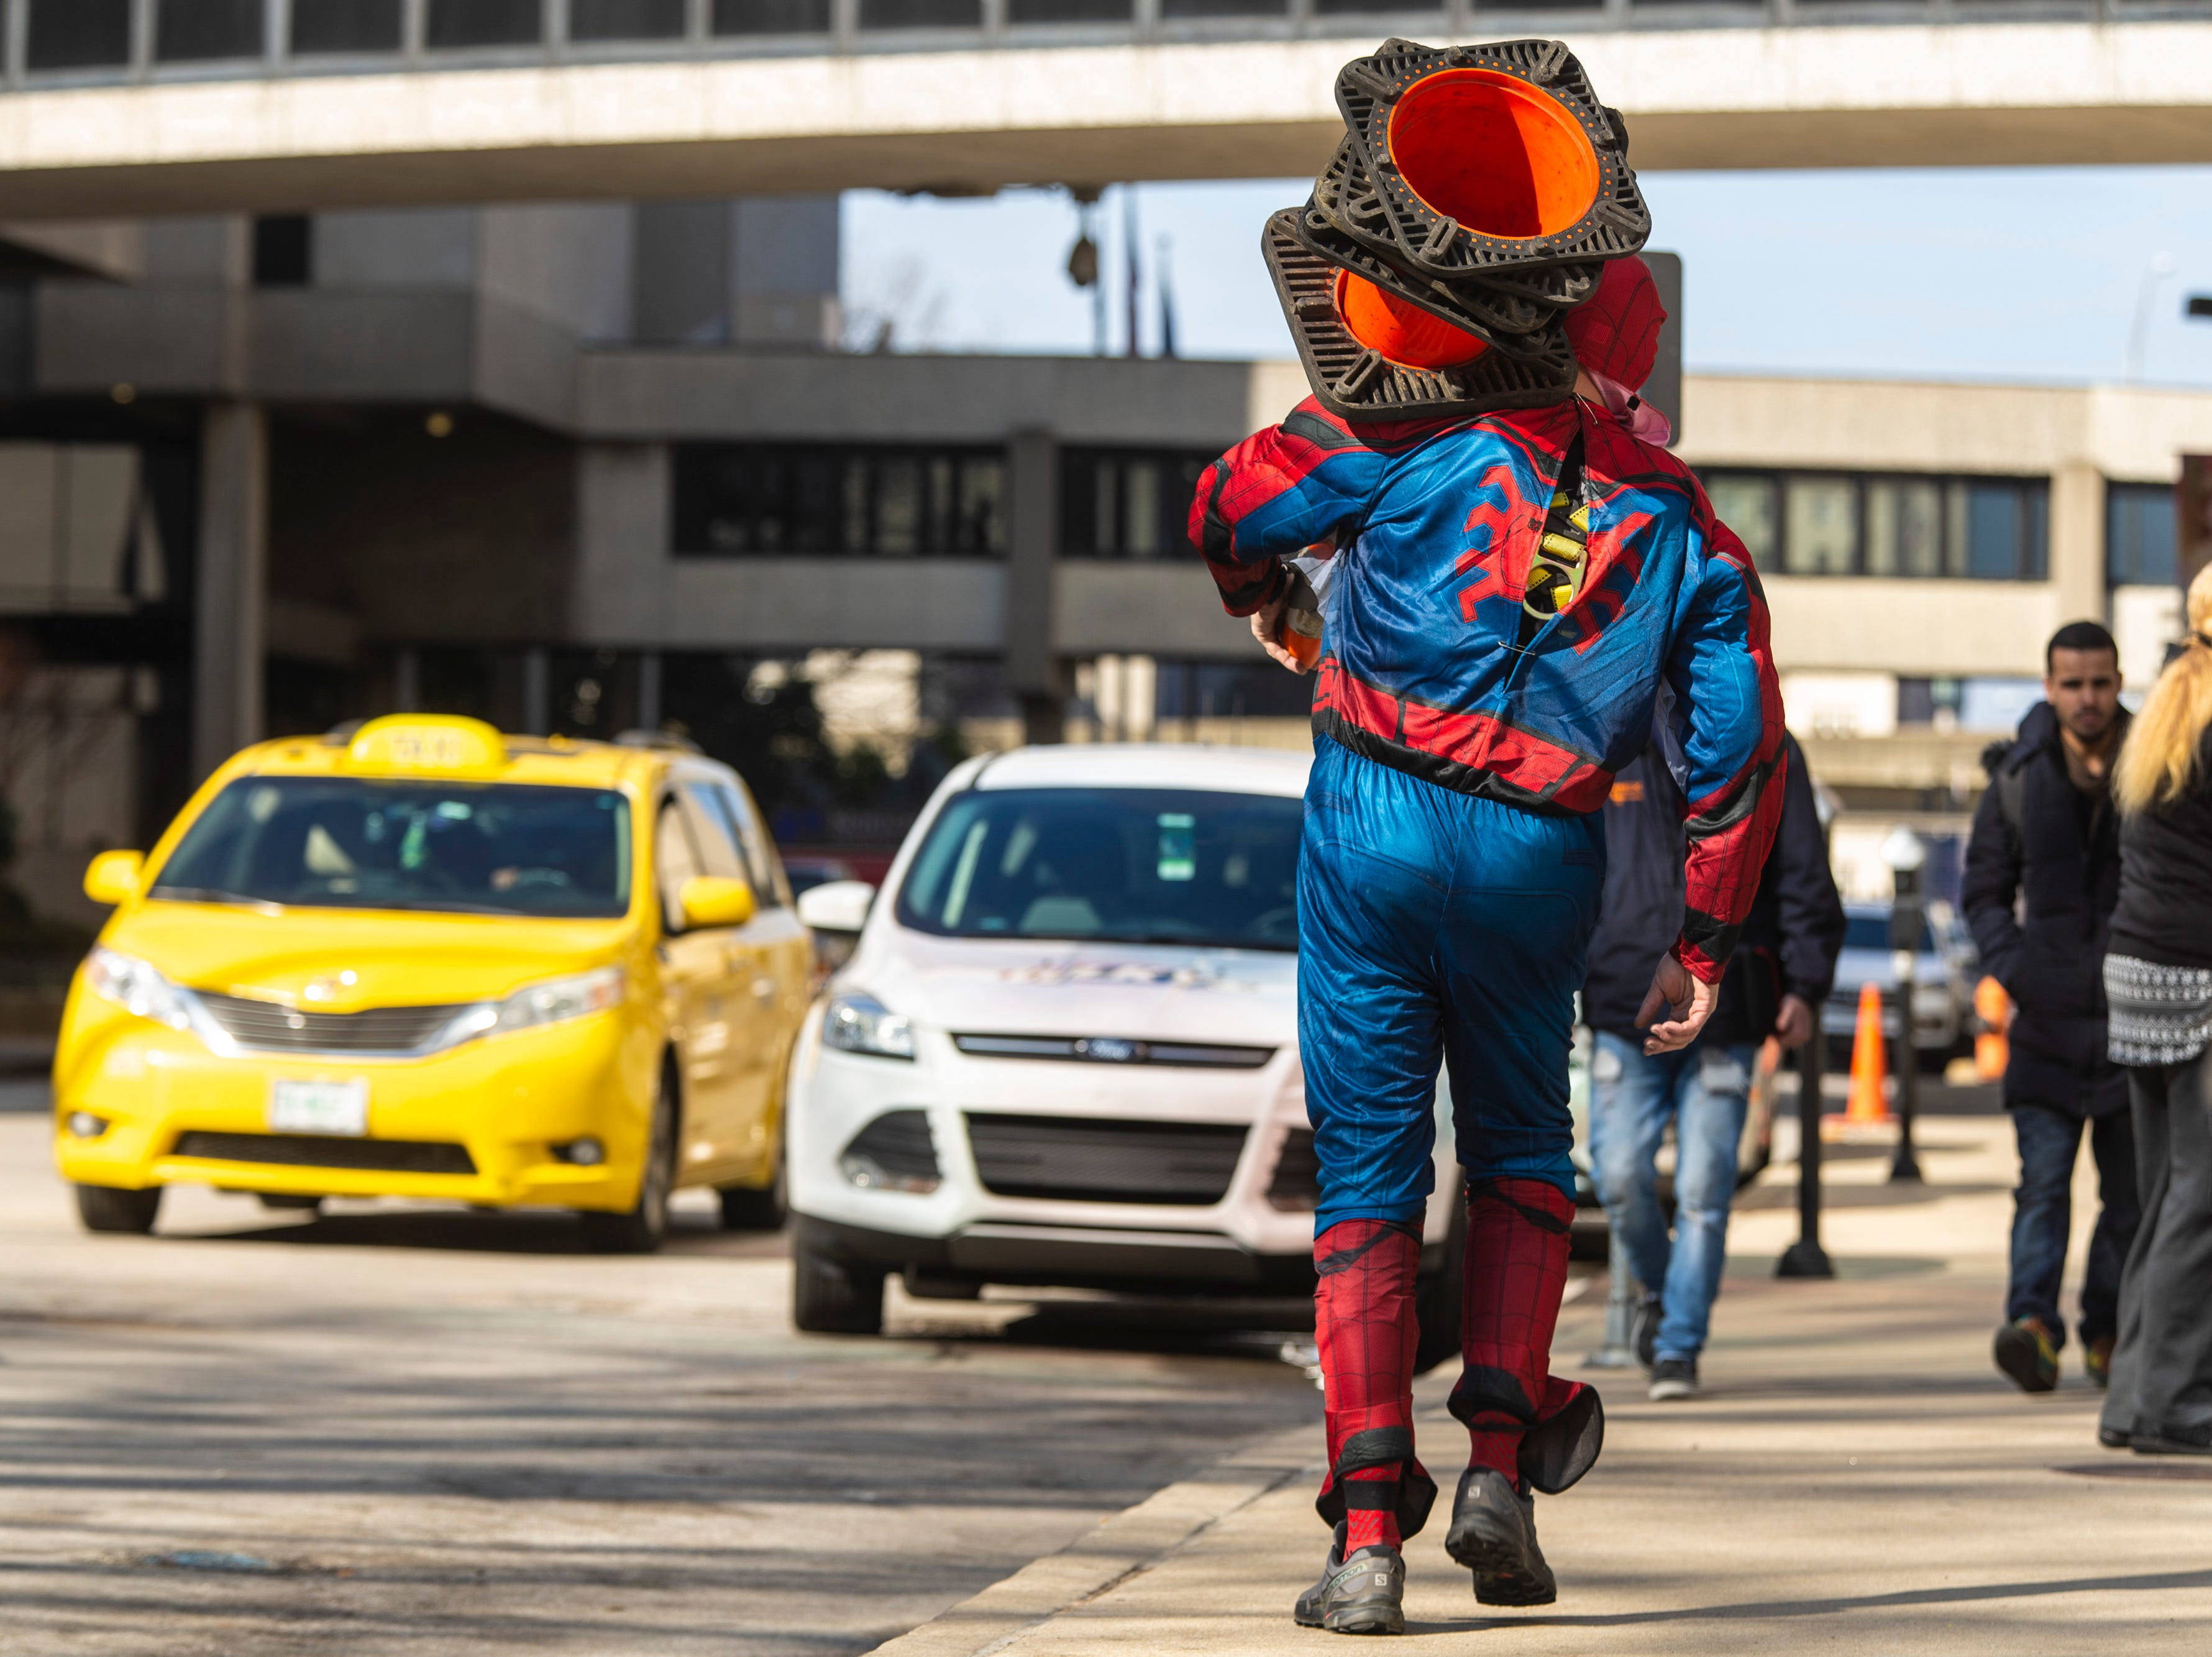 Duke Hart, with Pro Clean International, carries cones as the team wore super hero costumes while cleaning the windows at Norton Children's Hospital on Thursday. Feb. 21, 2019